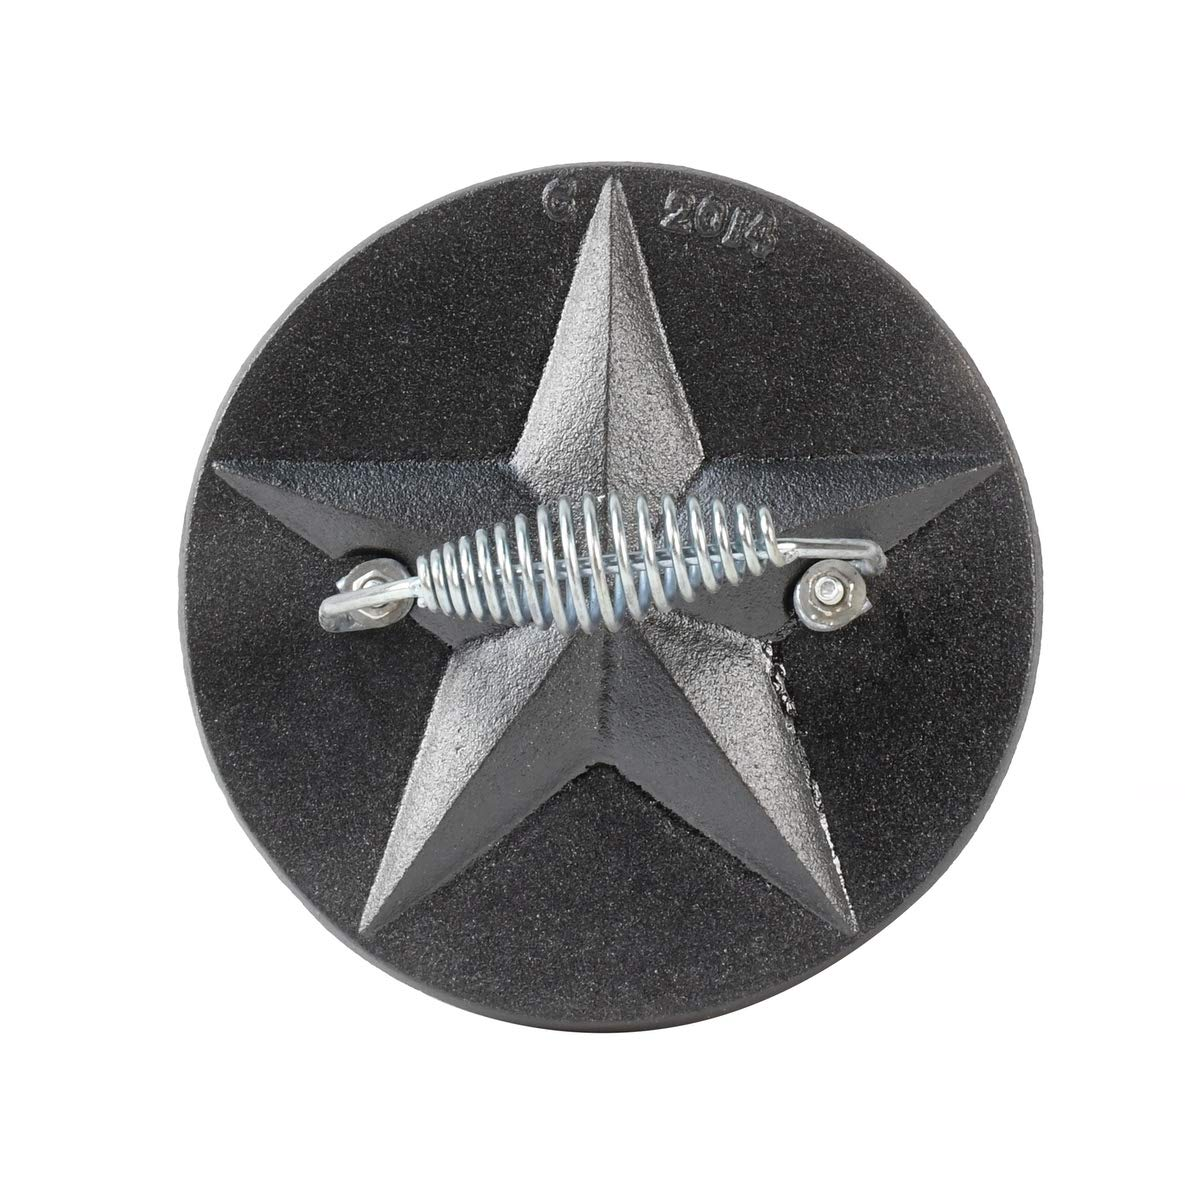 Cast Iron Texas Star Steak Press Flat Bacon Burger Patty Hamburger BBQ Grill Tool by TG,LLC